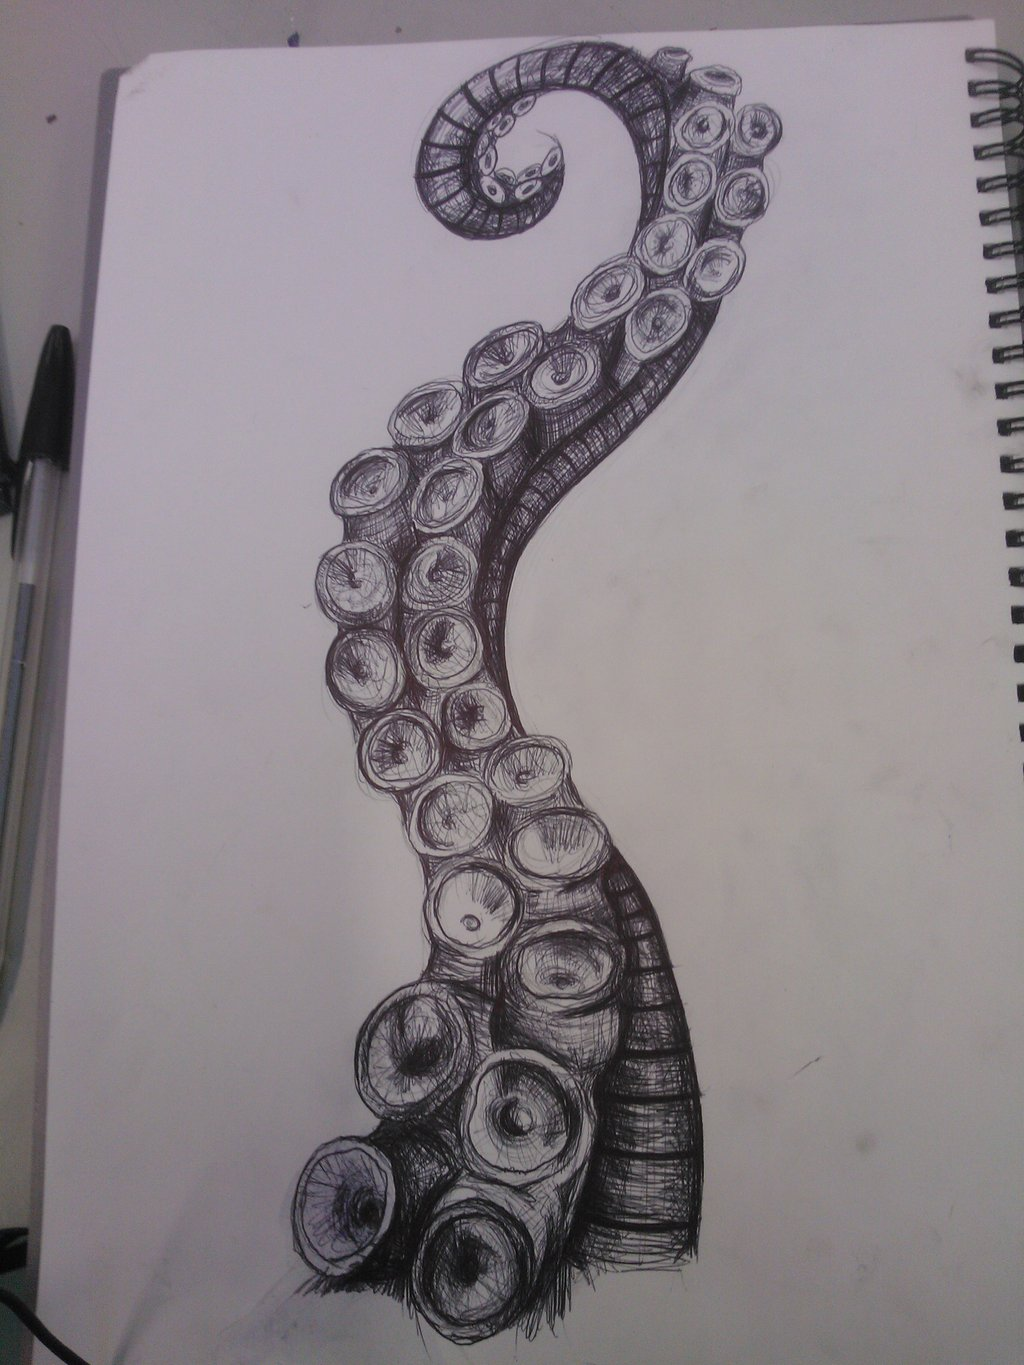 Drawn squid tentacle By deviantart com Tentacle Octopus